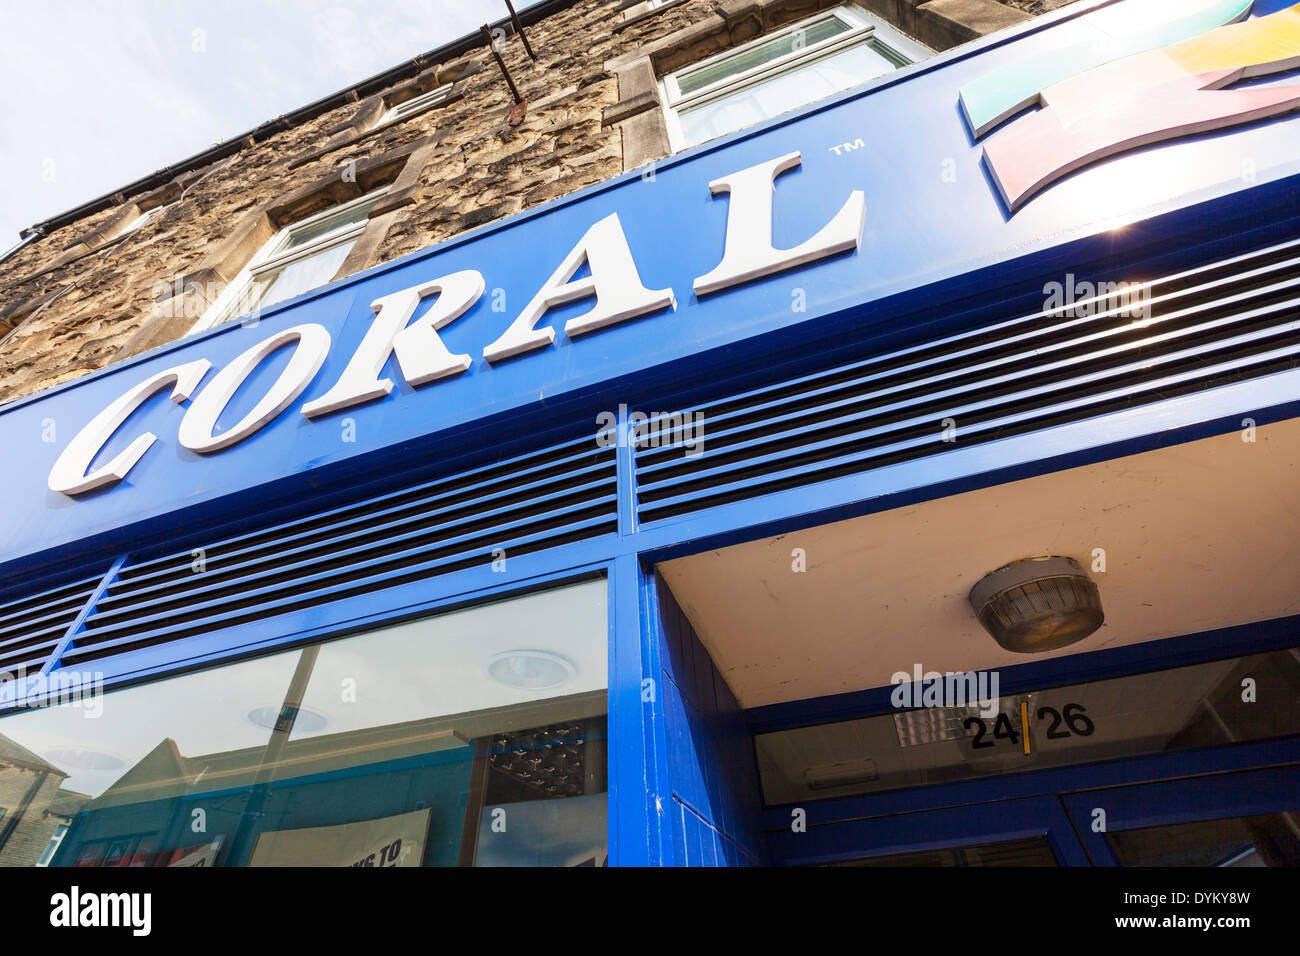 Coral shop sign bookmakers bookies betting gambling high street shops Skipton Town Yorkshire Dales National Park, UK England - Stock Image